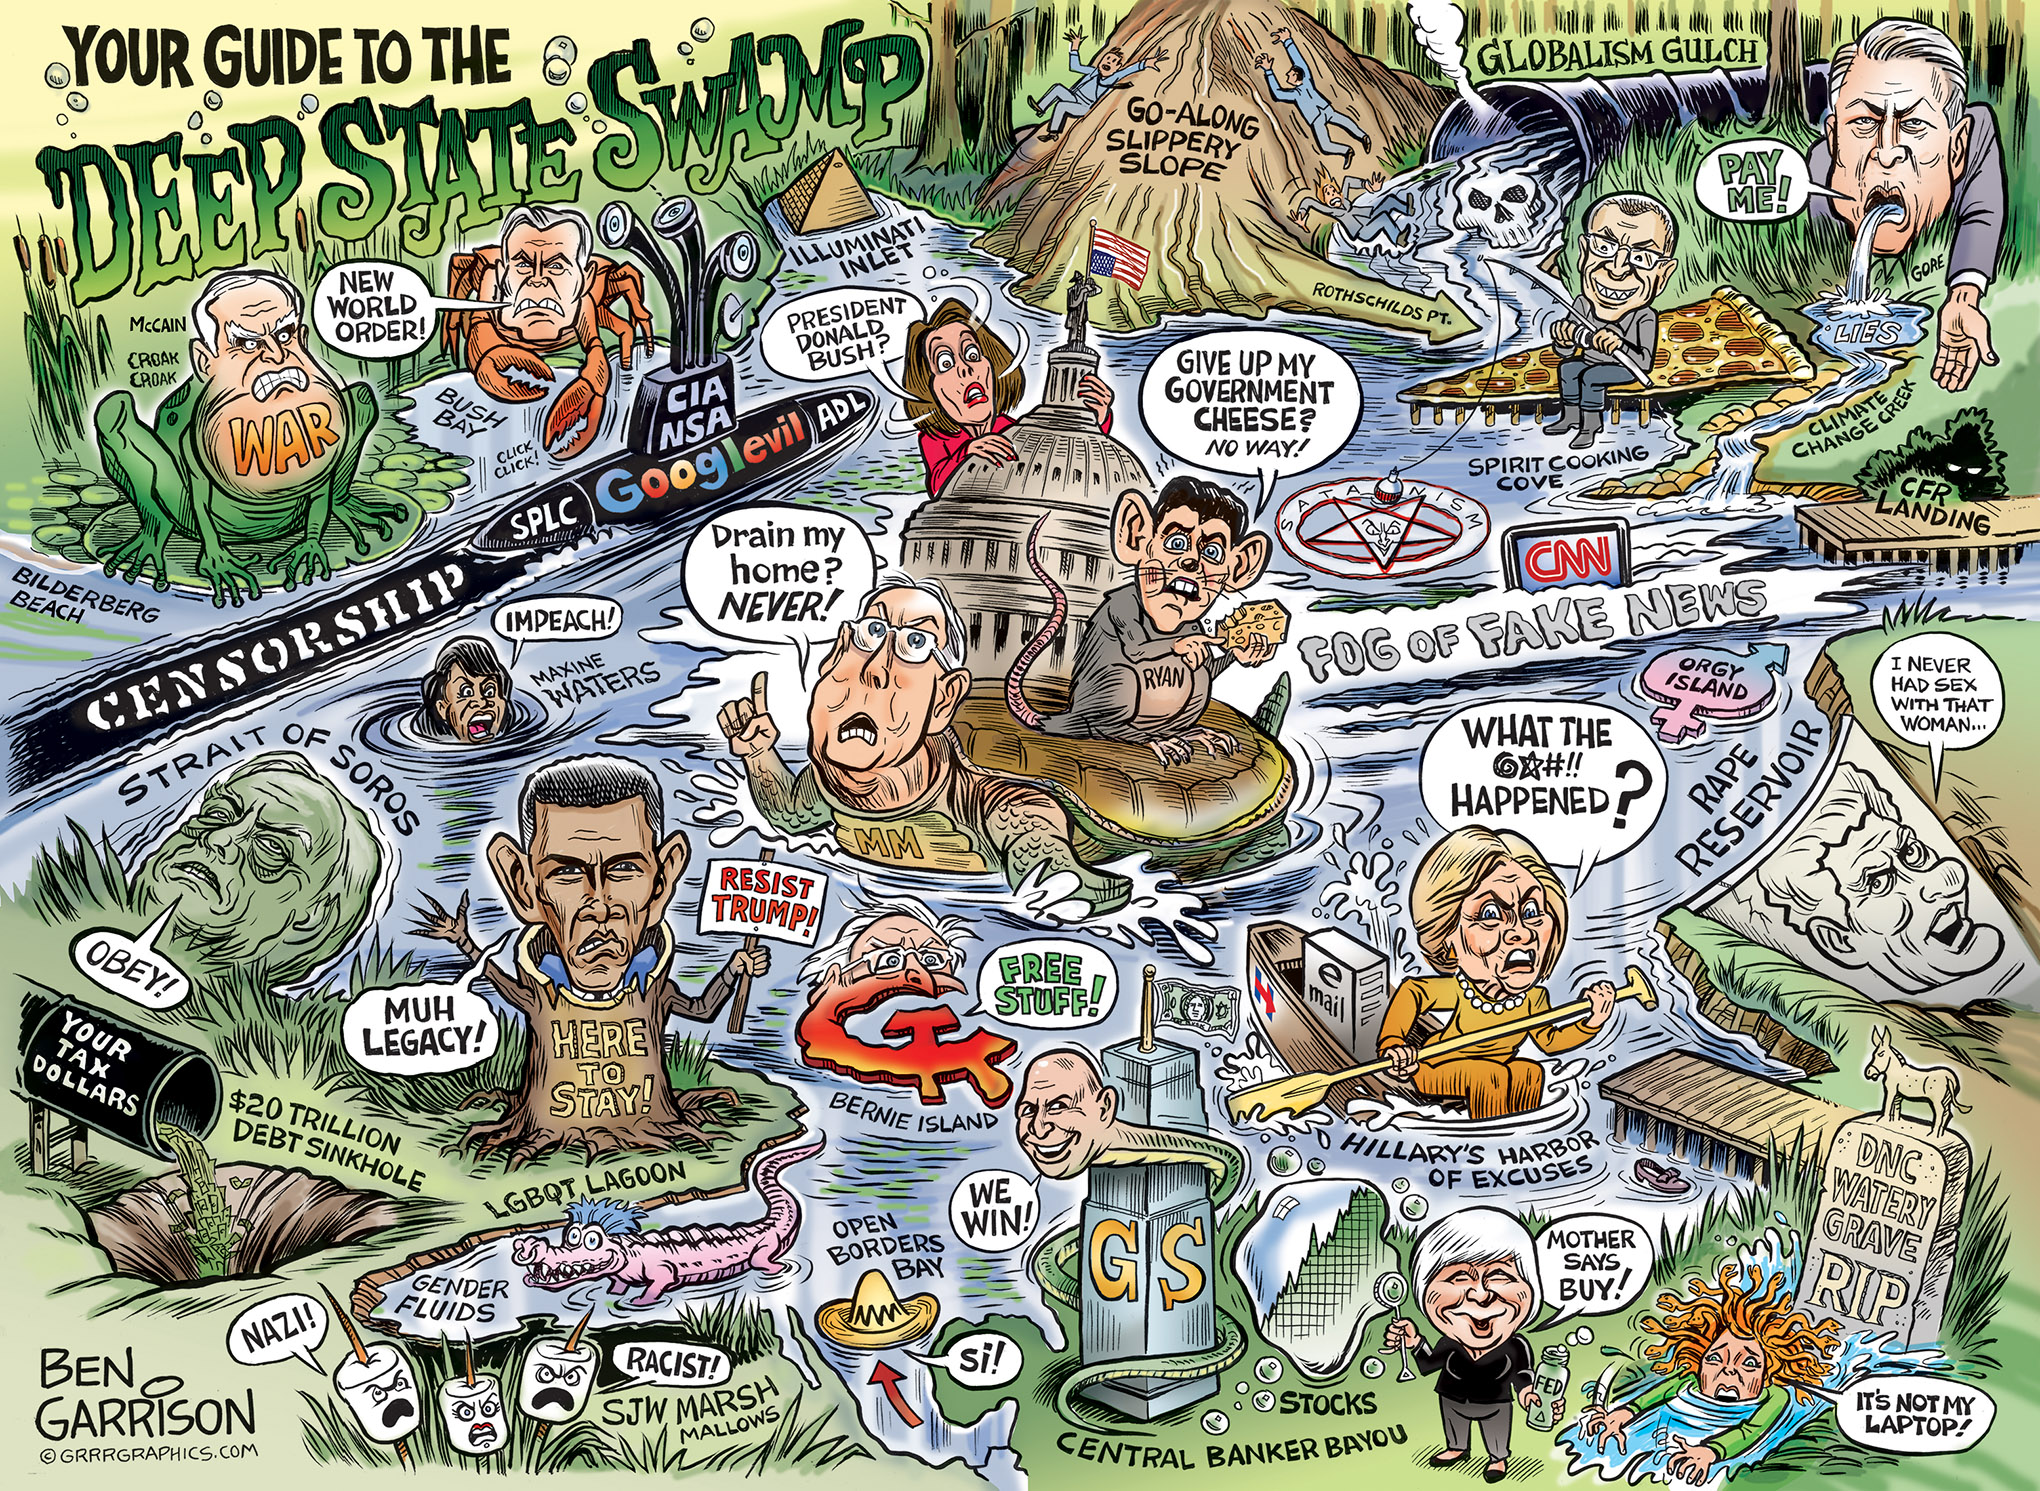 GUIDE-TO-DEEP-STATE-SWAMP